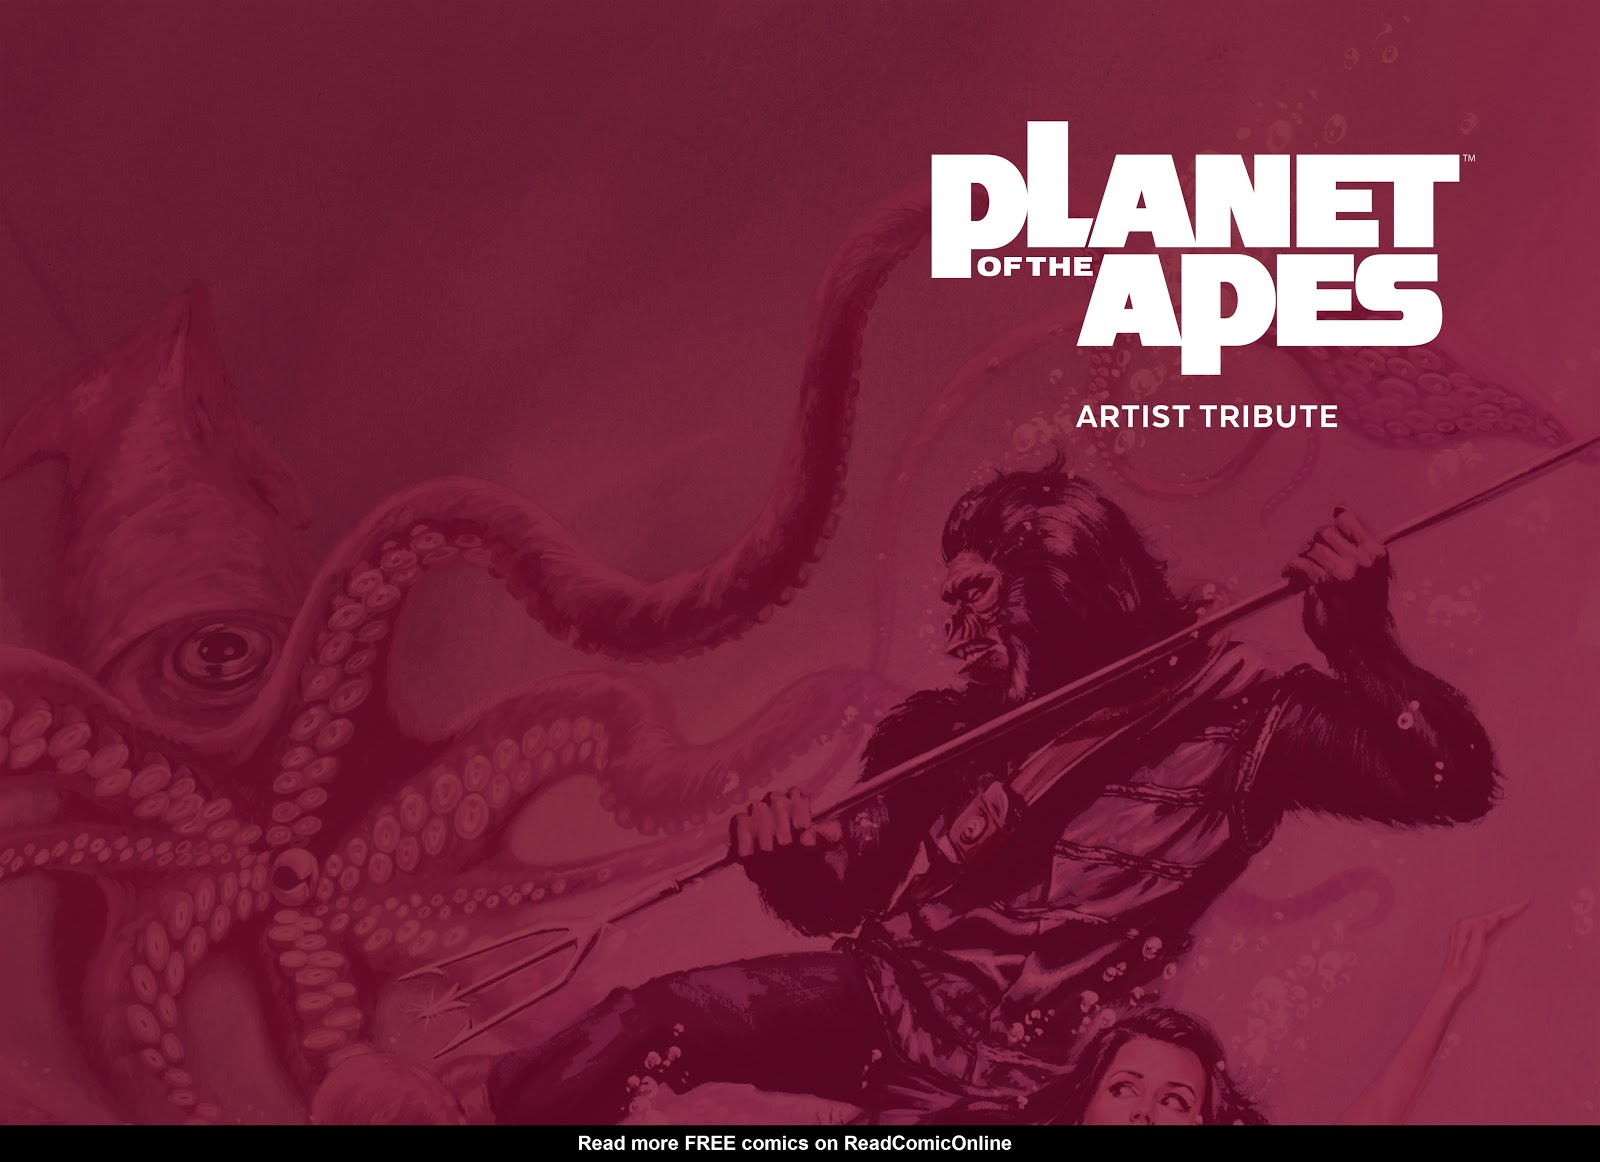 Read online Planet of the Apes Artist Tribute comic -  Issue # TPB - 4